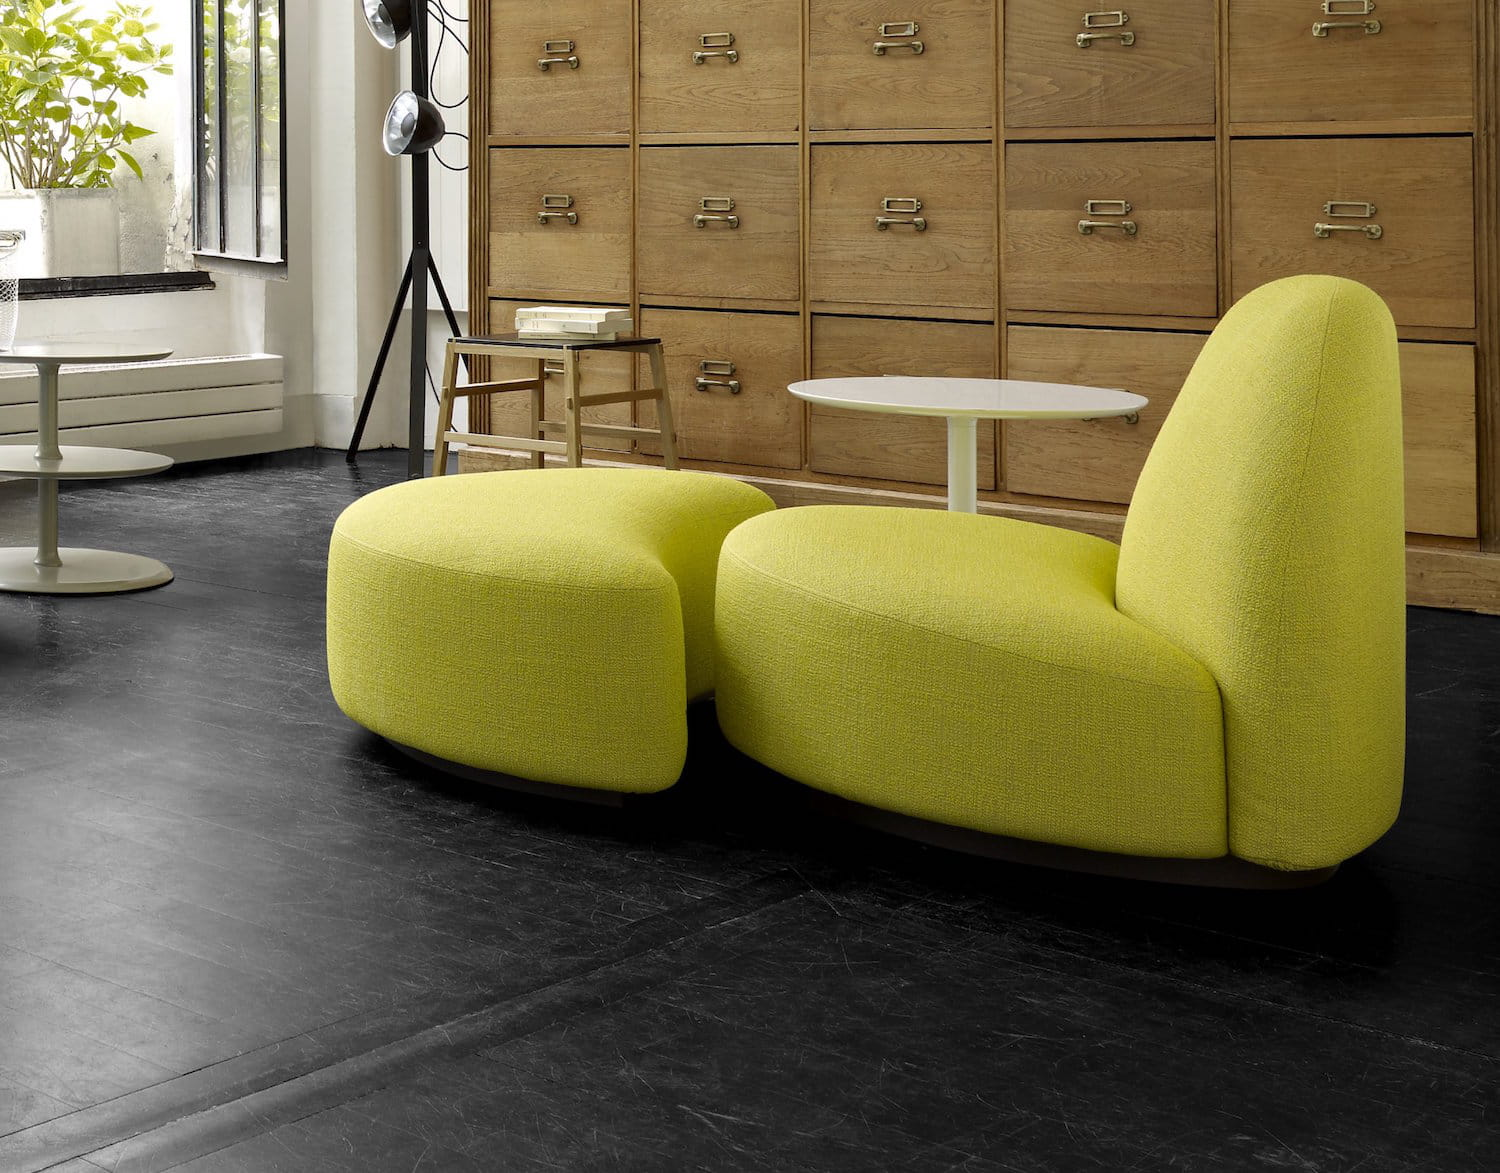 un duo fauteuil et ottoman mythique. Black Bedroom Furniture Sets. Home Design Ideas